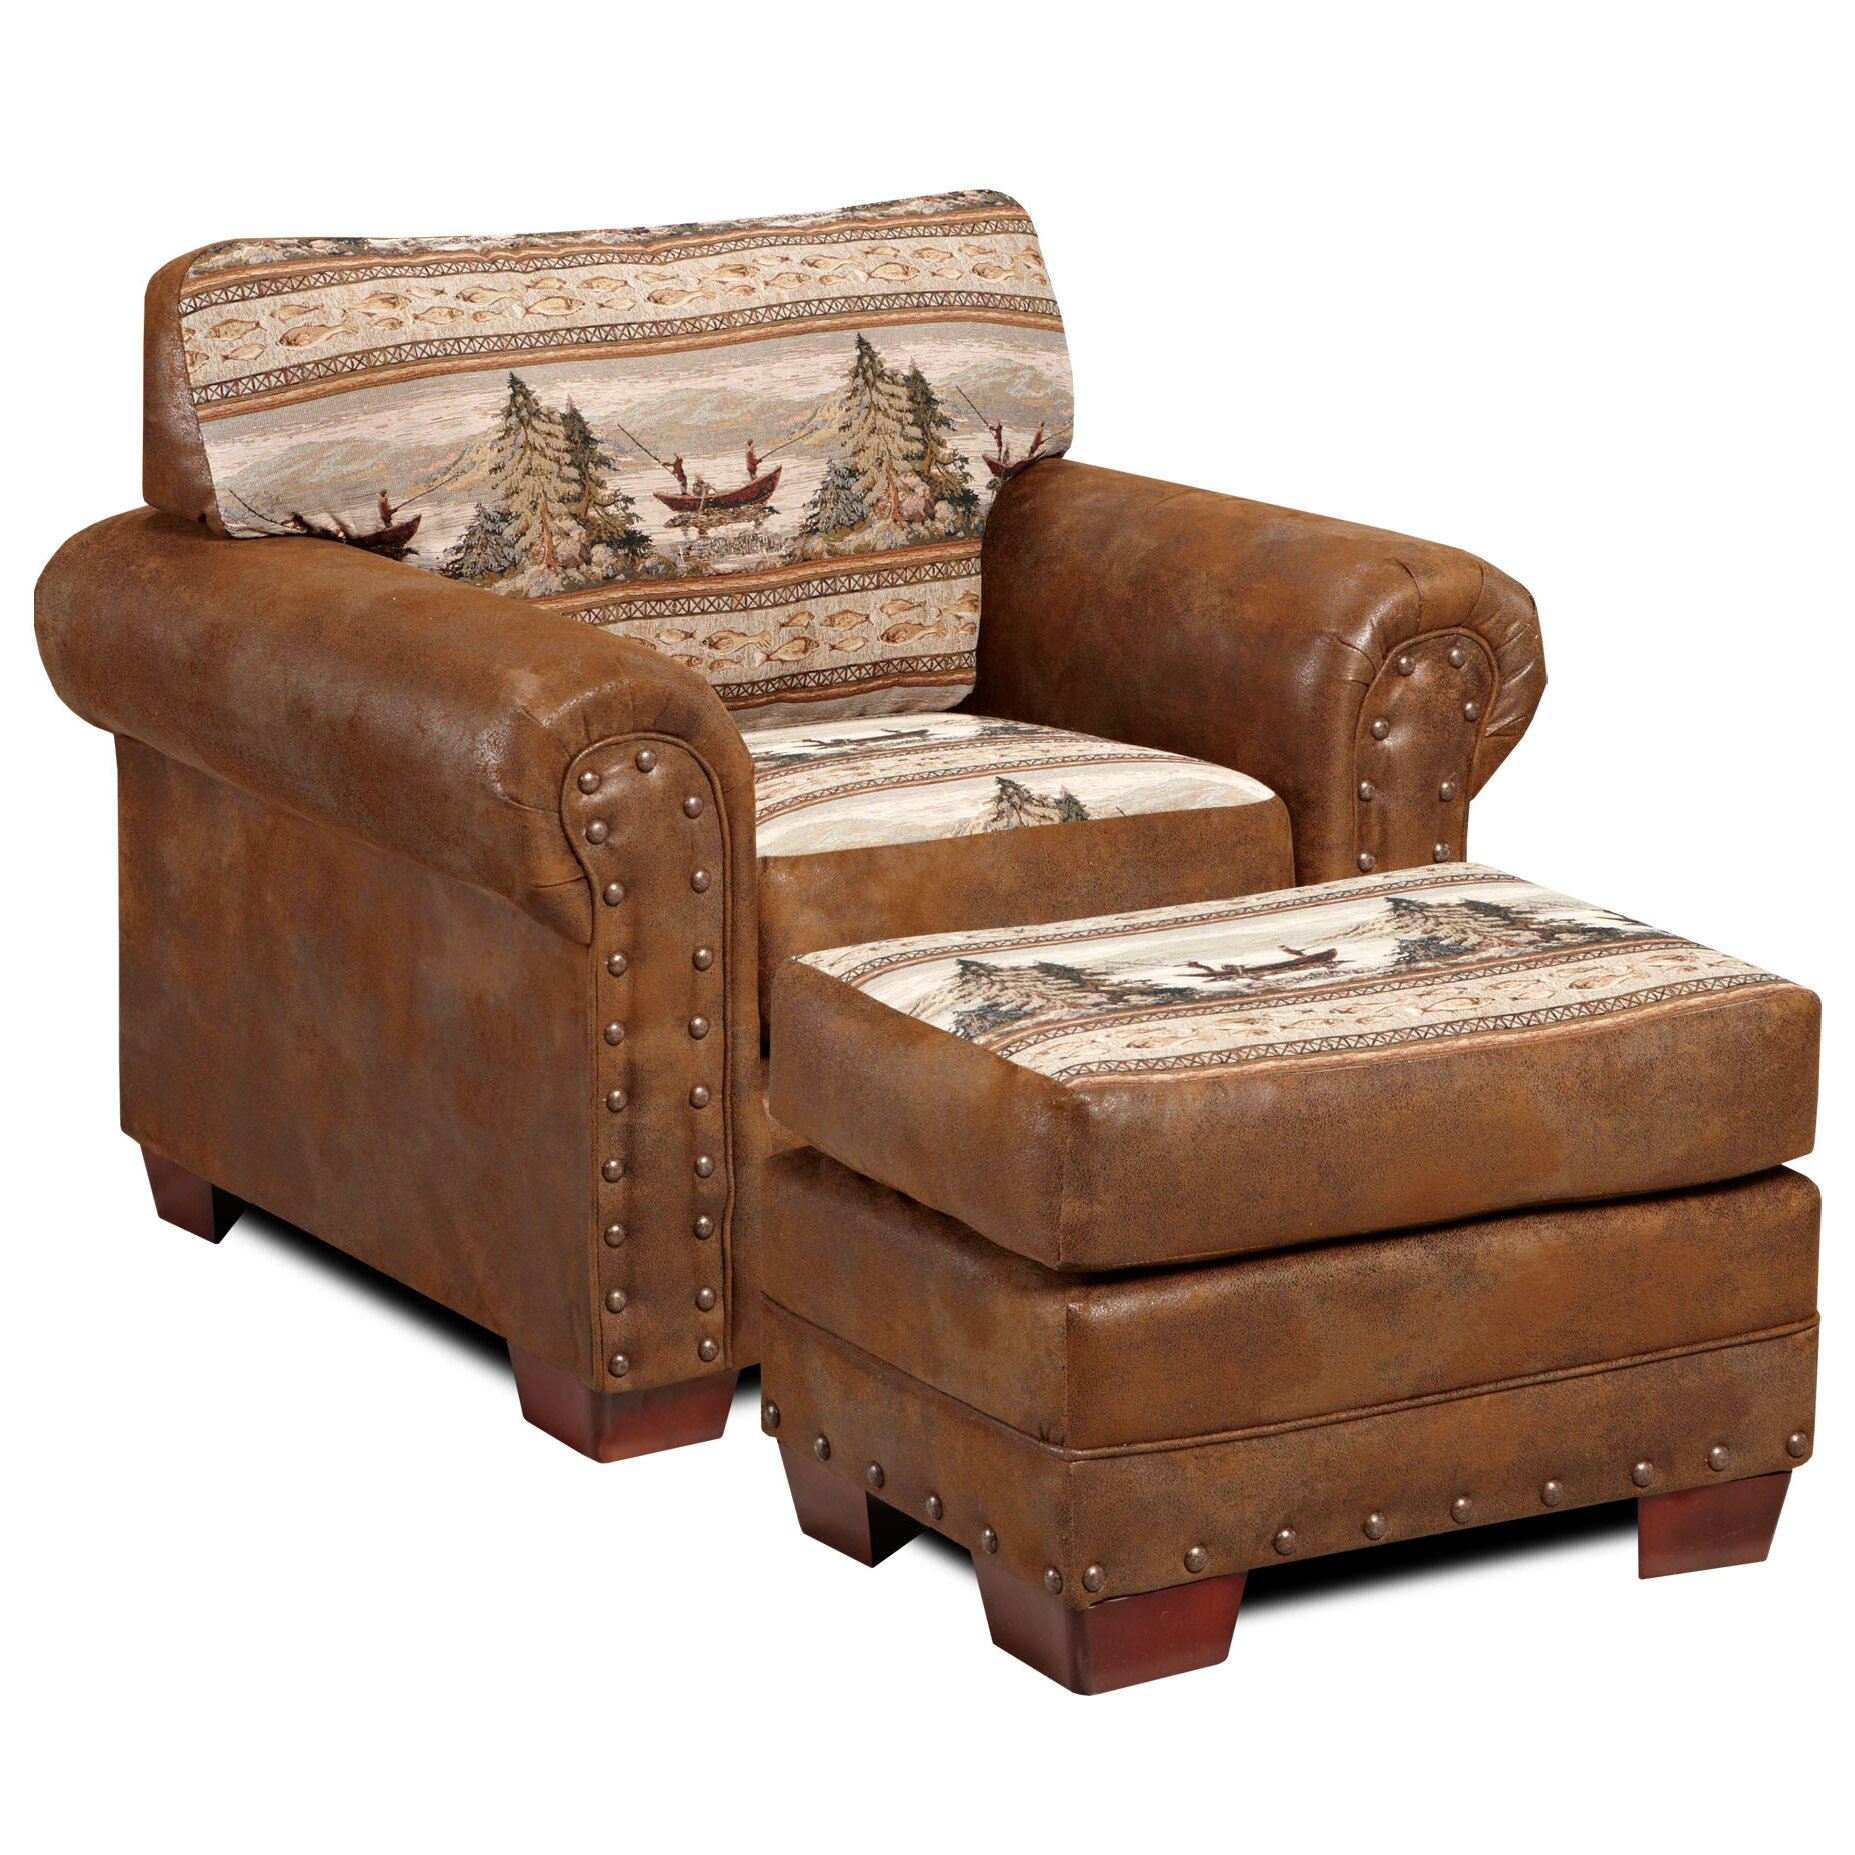 Warefair Com: American Furniture Classics Alpine Lodge 4 Piece Living